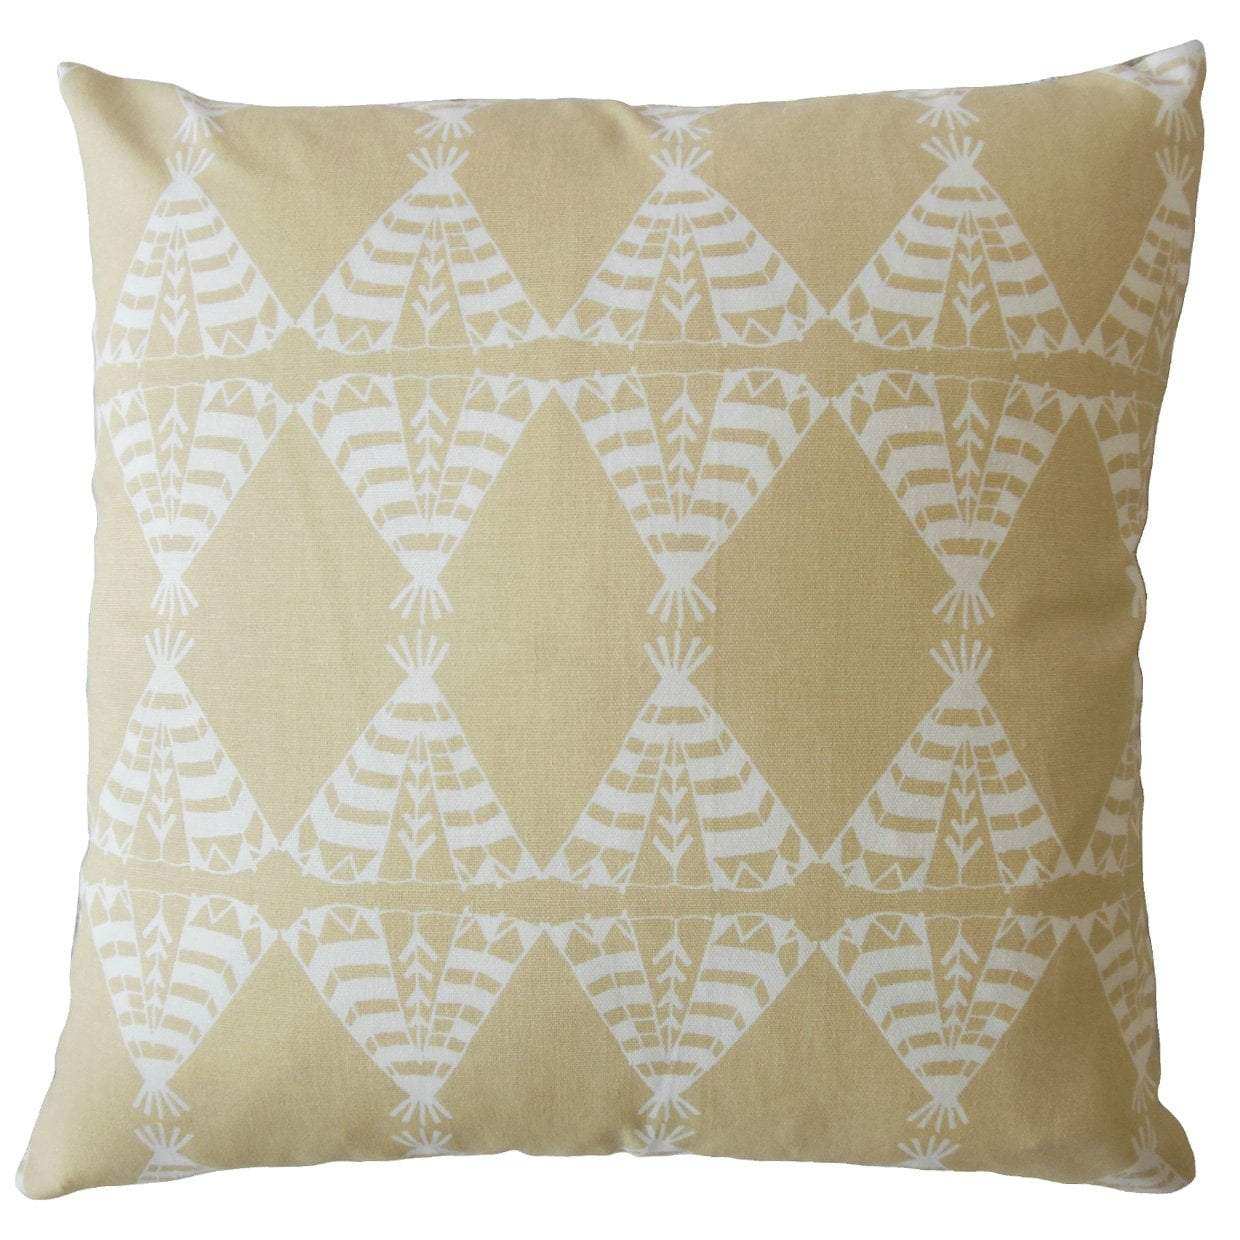 Tan Cotton Graphic Contemporary Throw Pillow Cover